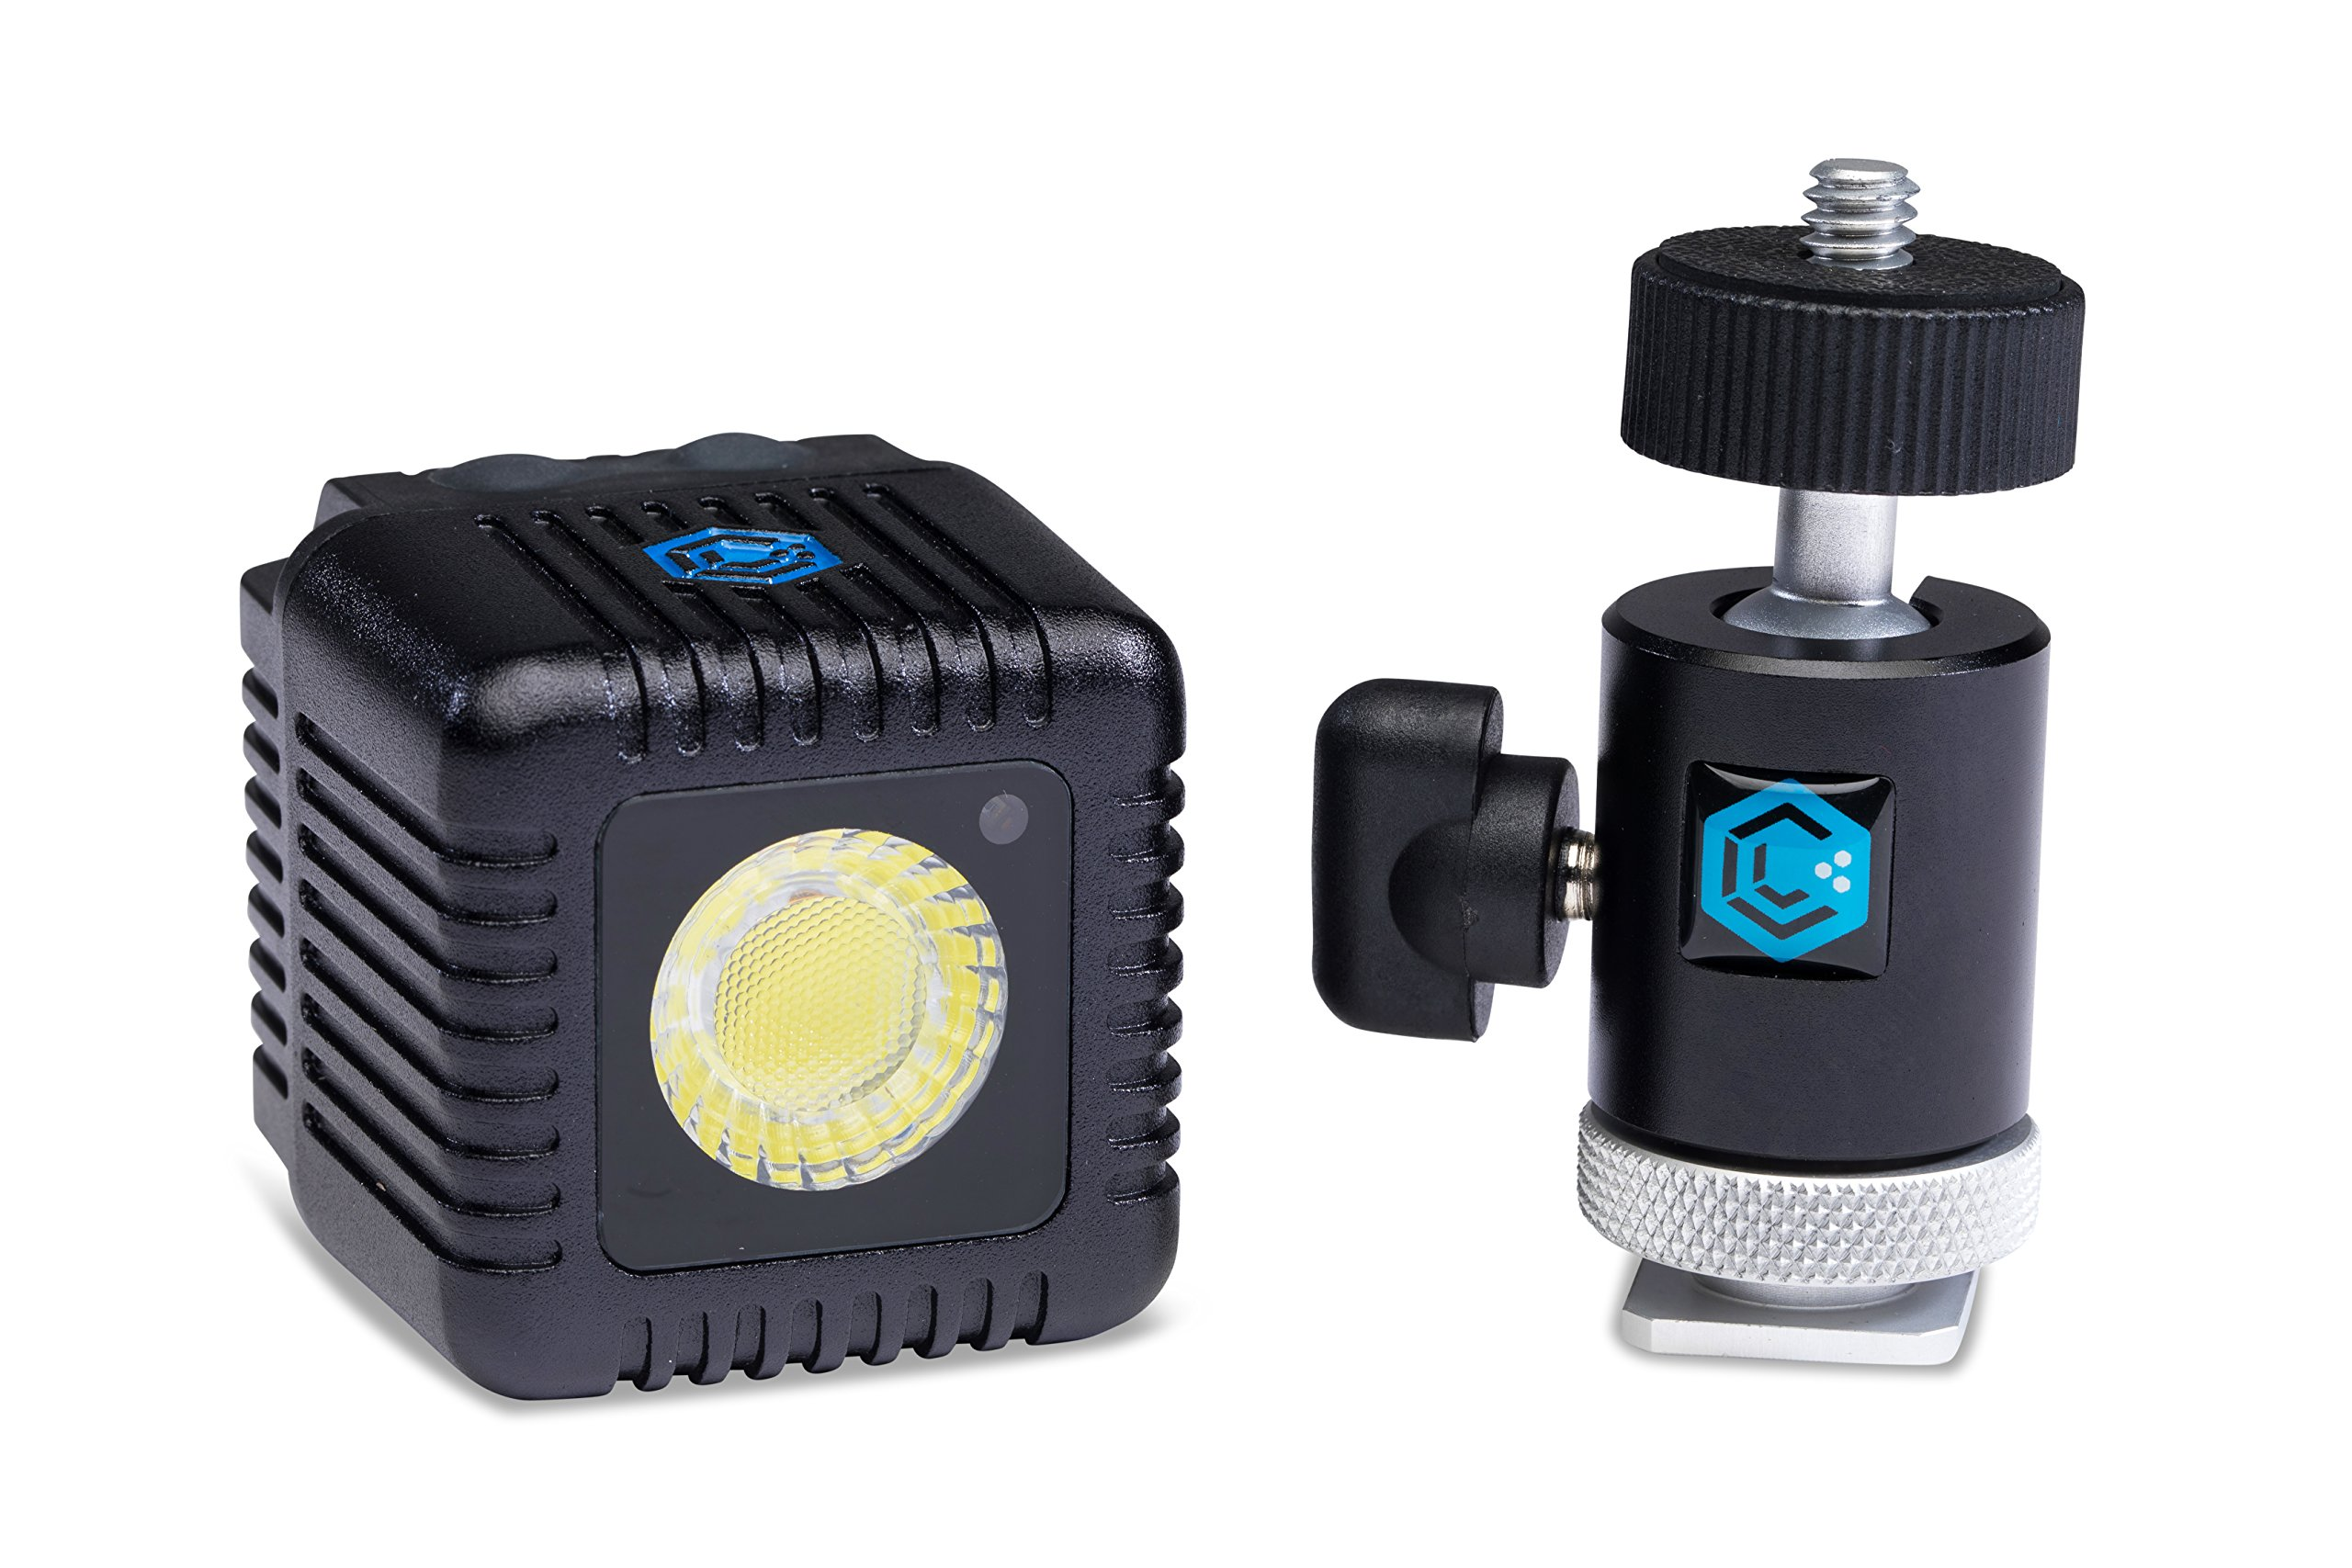 Lume Cube - Video Lighting Kit for Canon, Nikon, Sony, Lumix, Fujifilm, Olympus, Pentax by LUME CUBE